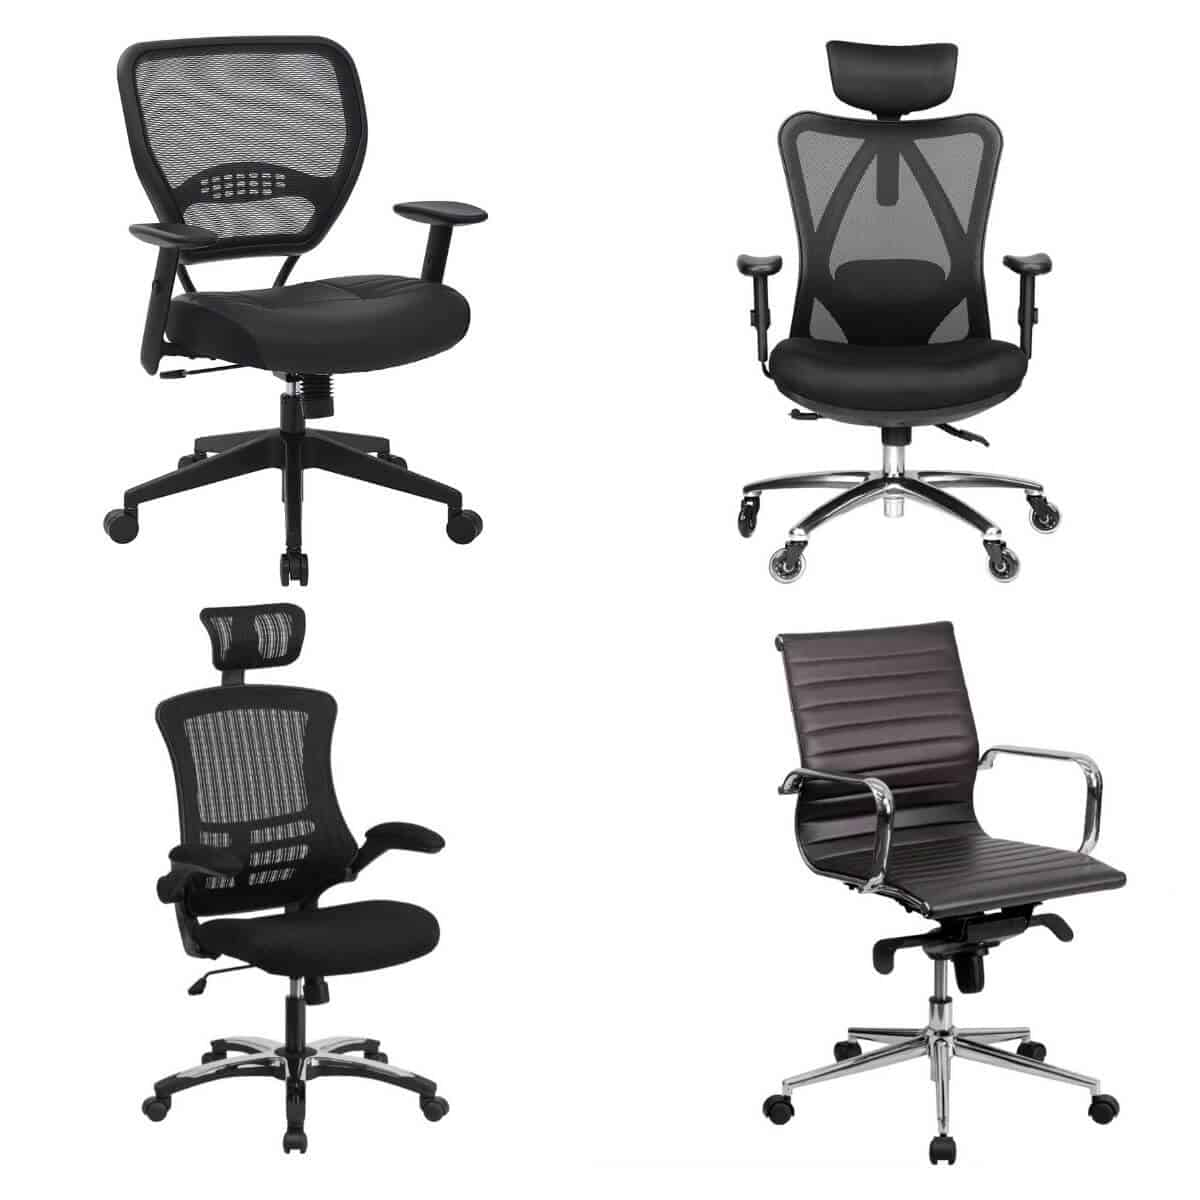 10 Best Home Office Chairs Next Level Gents